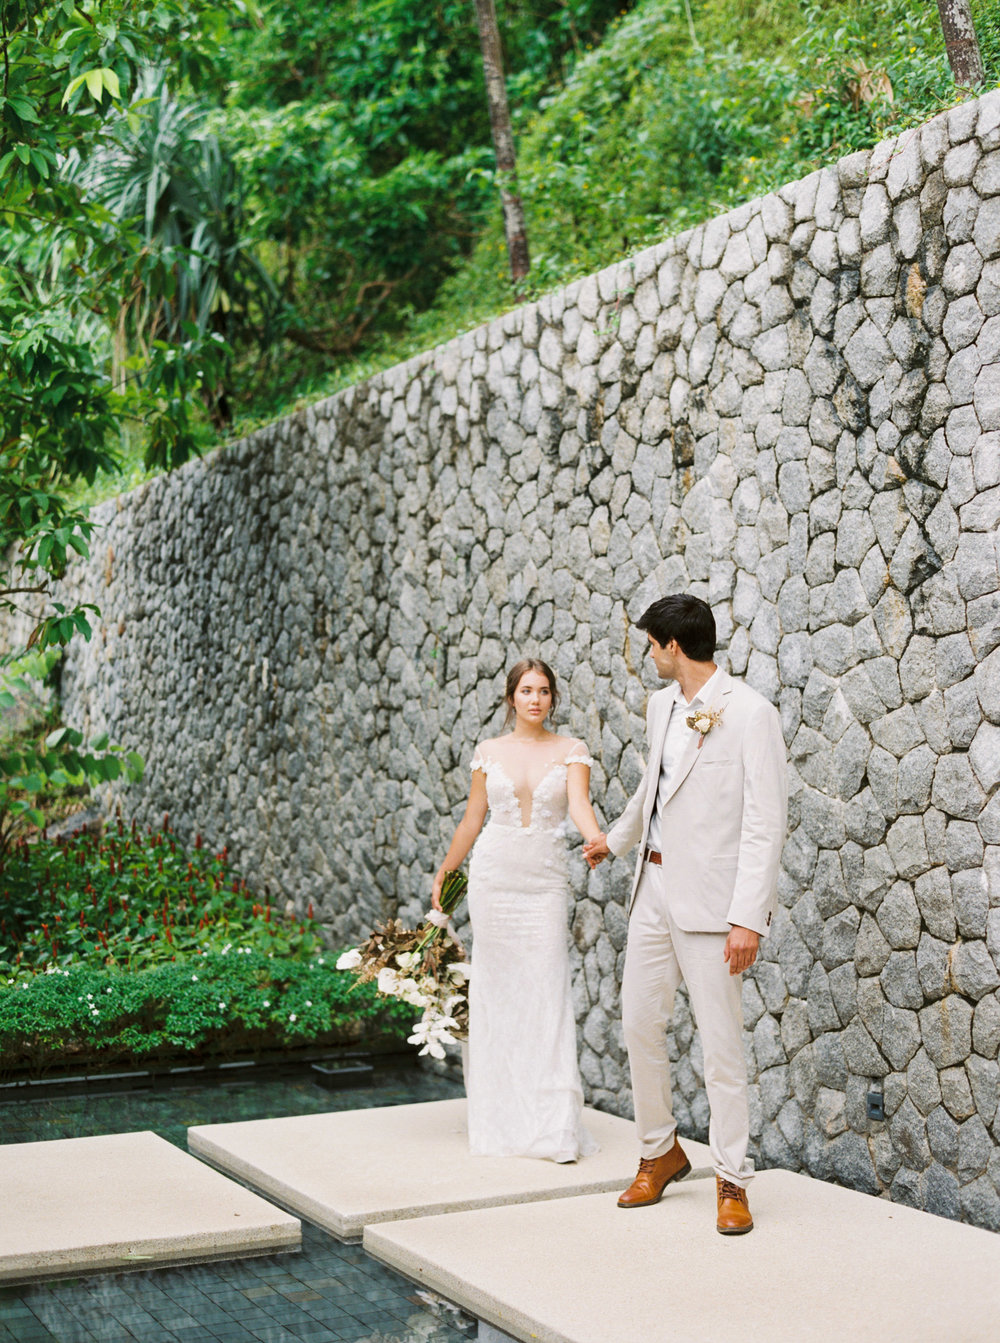 Destination Wedding Phuket Thailand Fine Art Film Photographer Sheri McMahon-00026-26.jpg